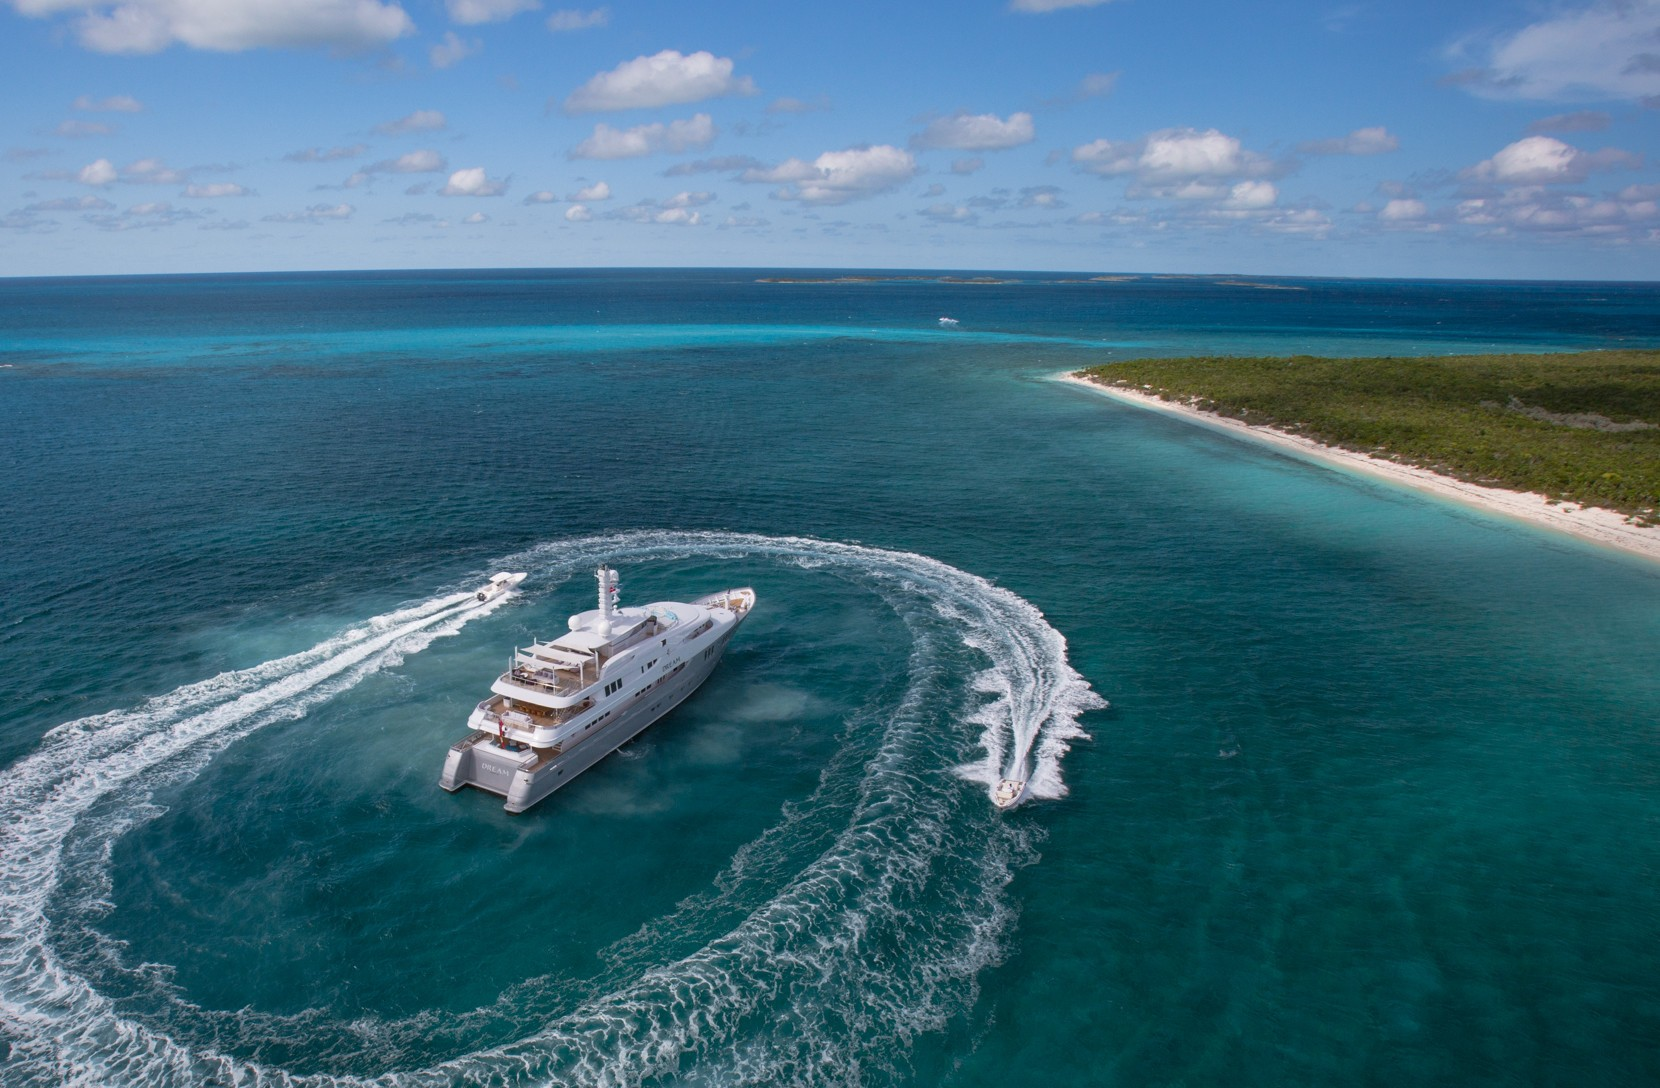 Yacht DREAM by Abeking & Rasmussen - Tender in the Caribbean